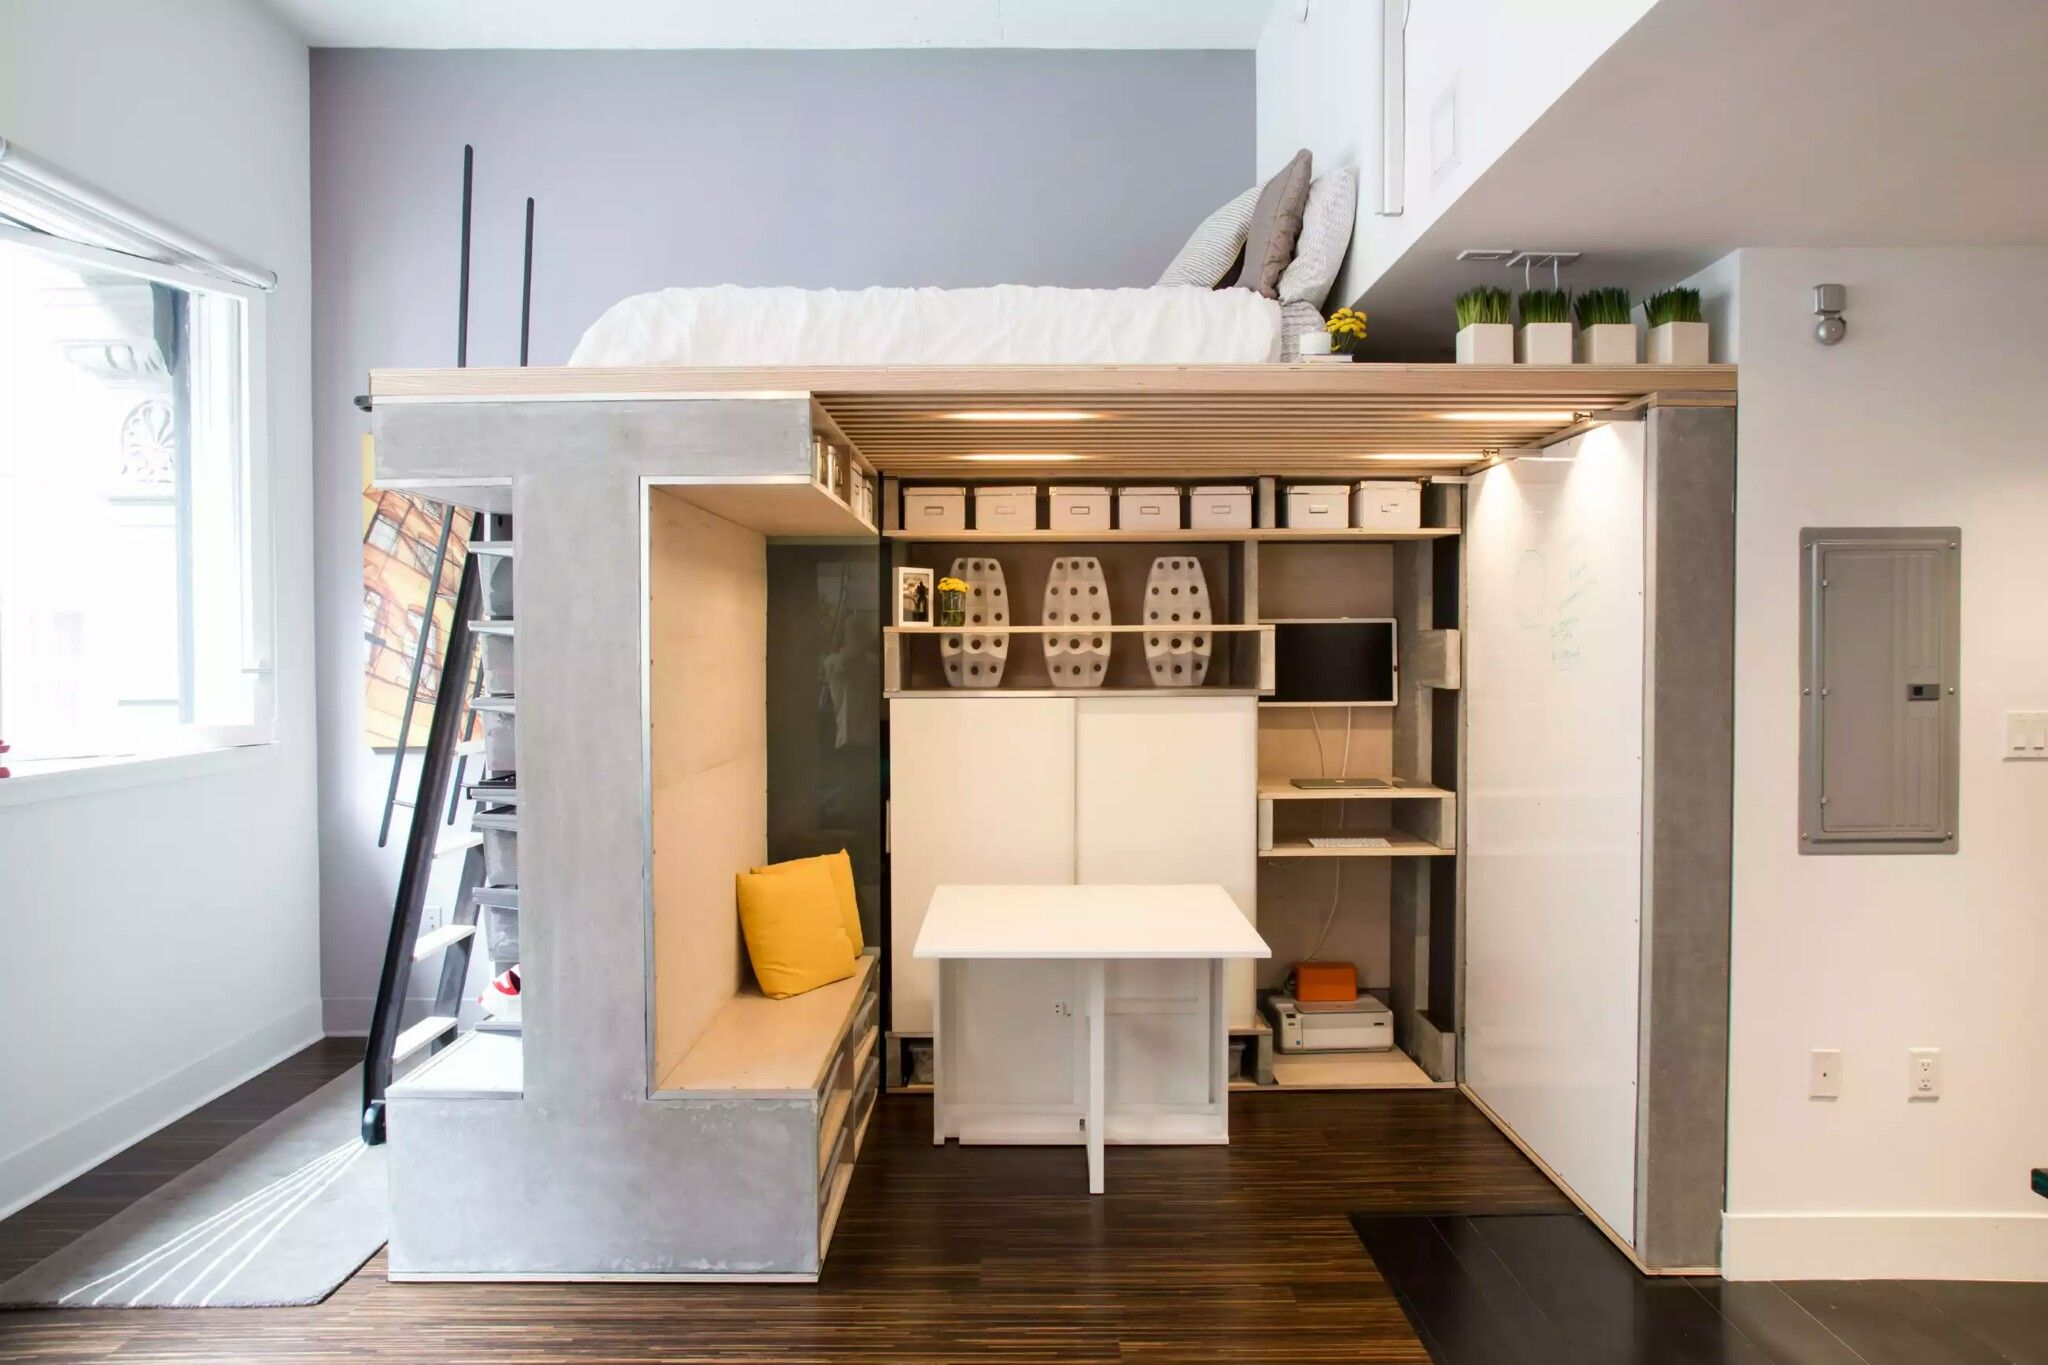 Pin By Chienju On Room Ideas Tiny Studio Apartments Studio